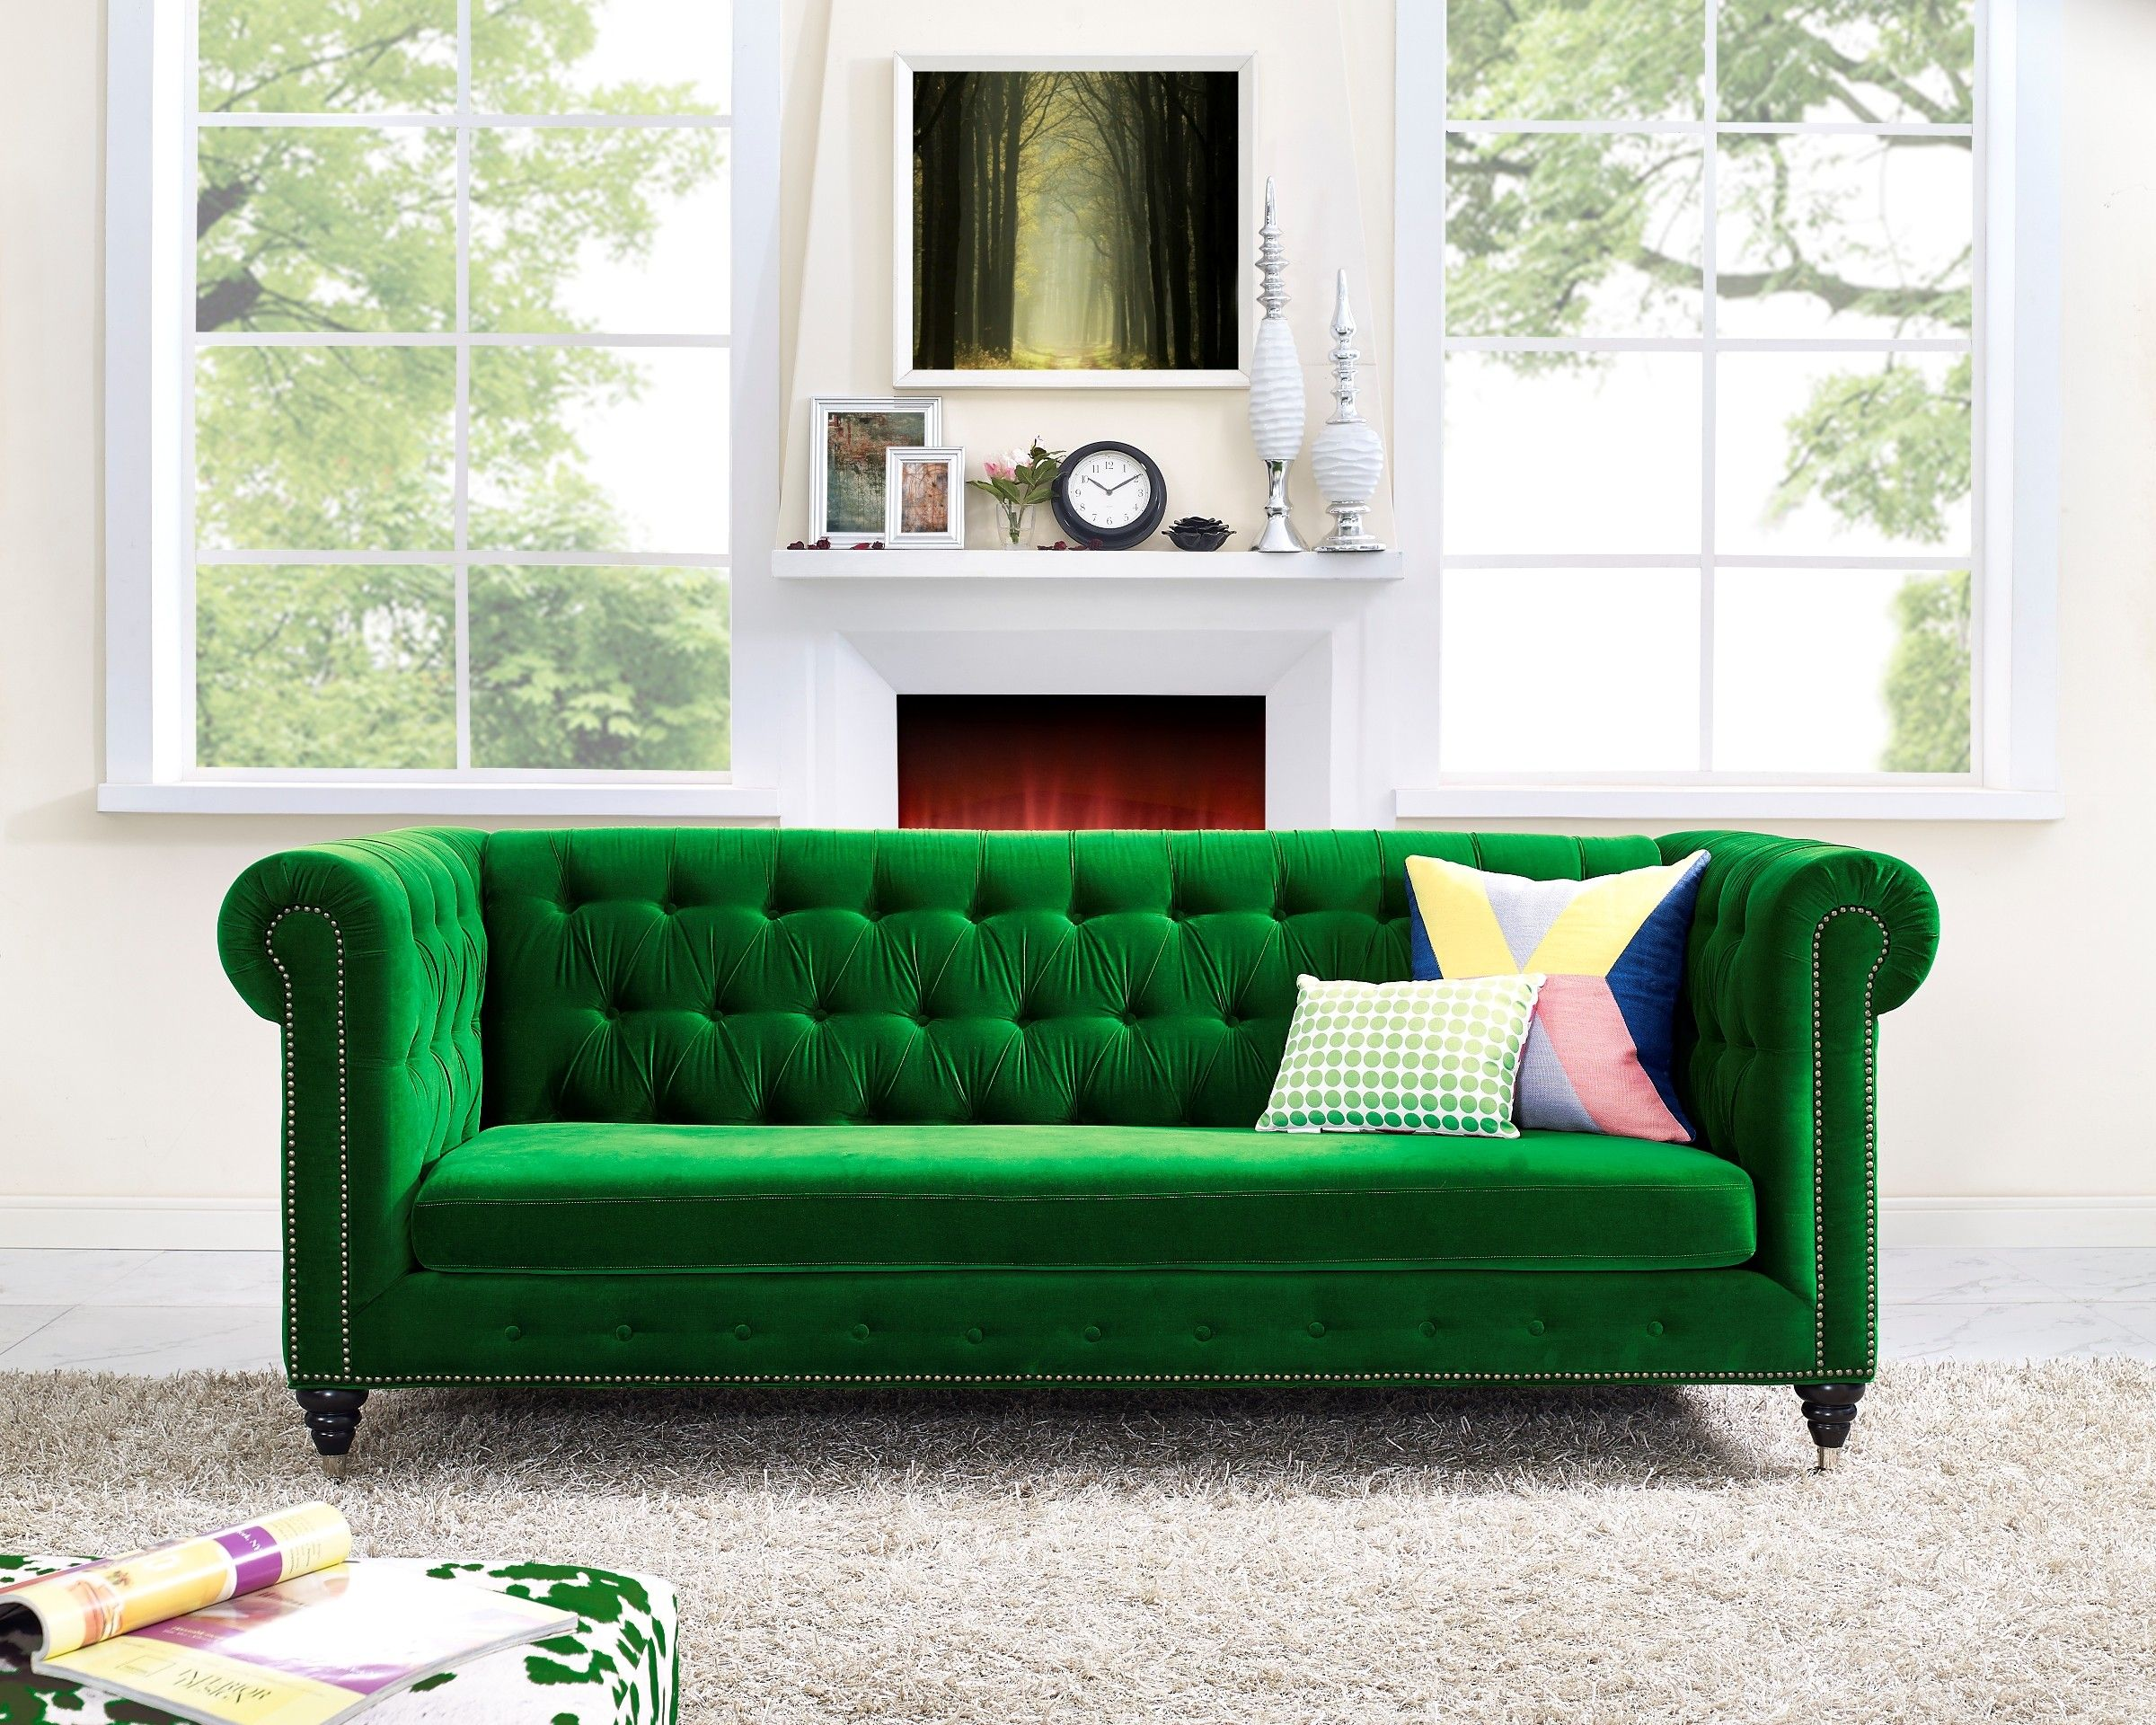 Chesterfield Sofas And Velvet Will Always Be In Style Sofa Home, Nailhead  Trim, Green